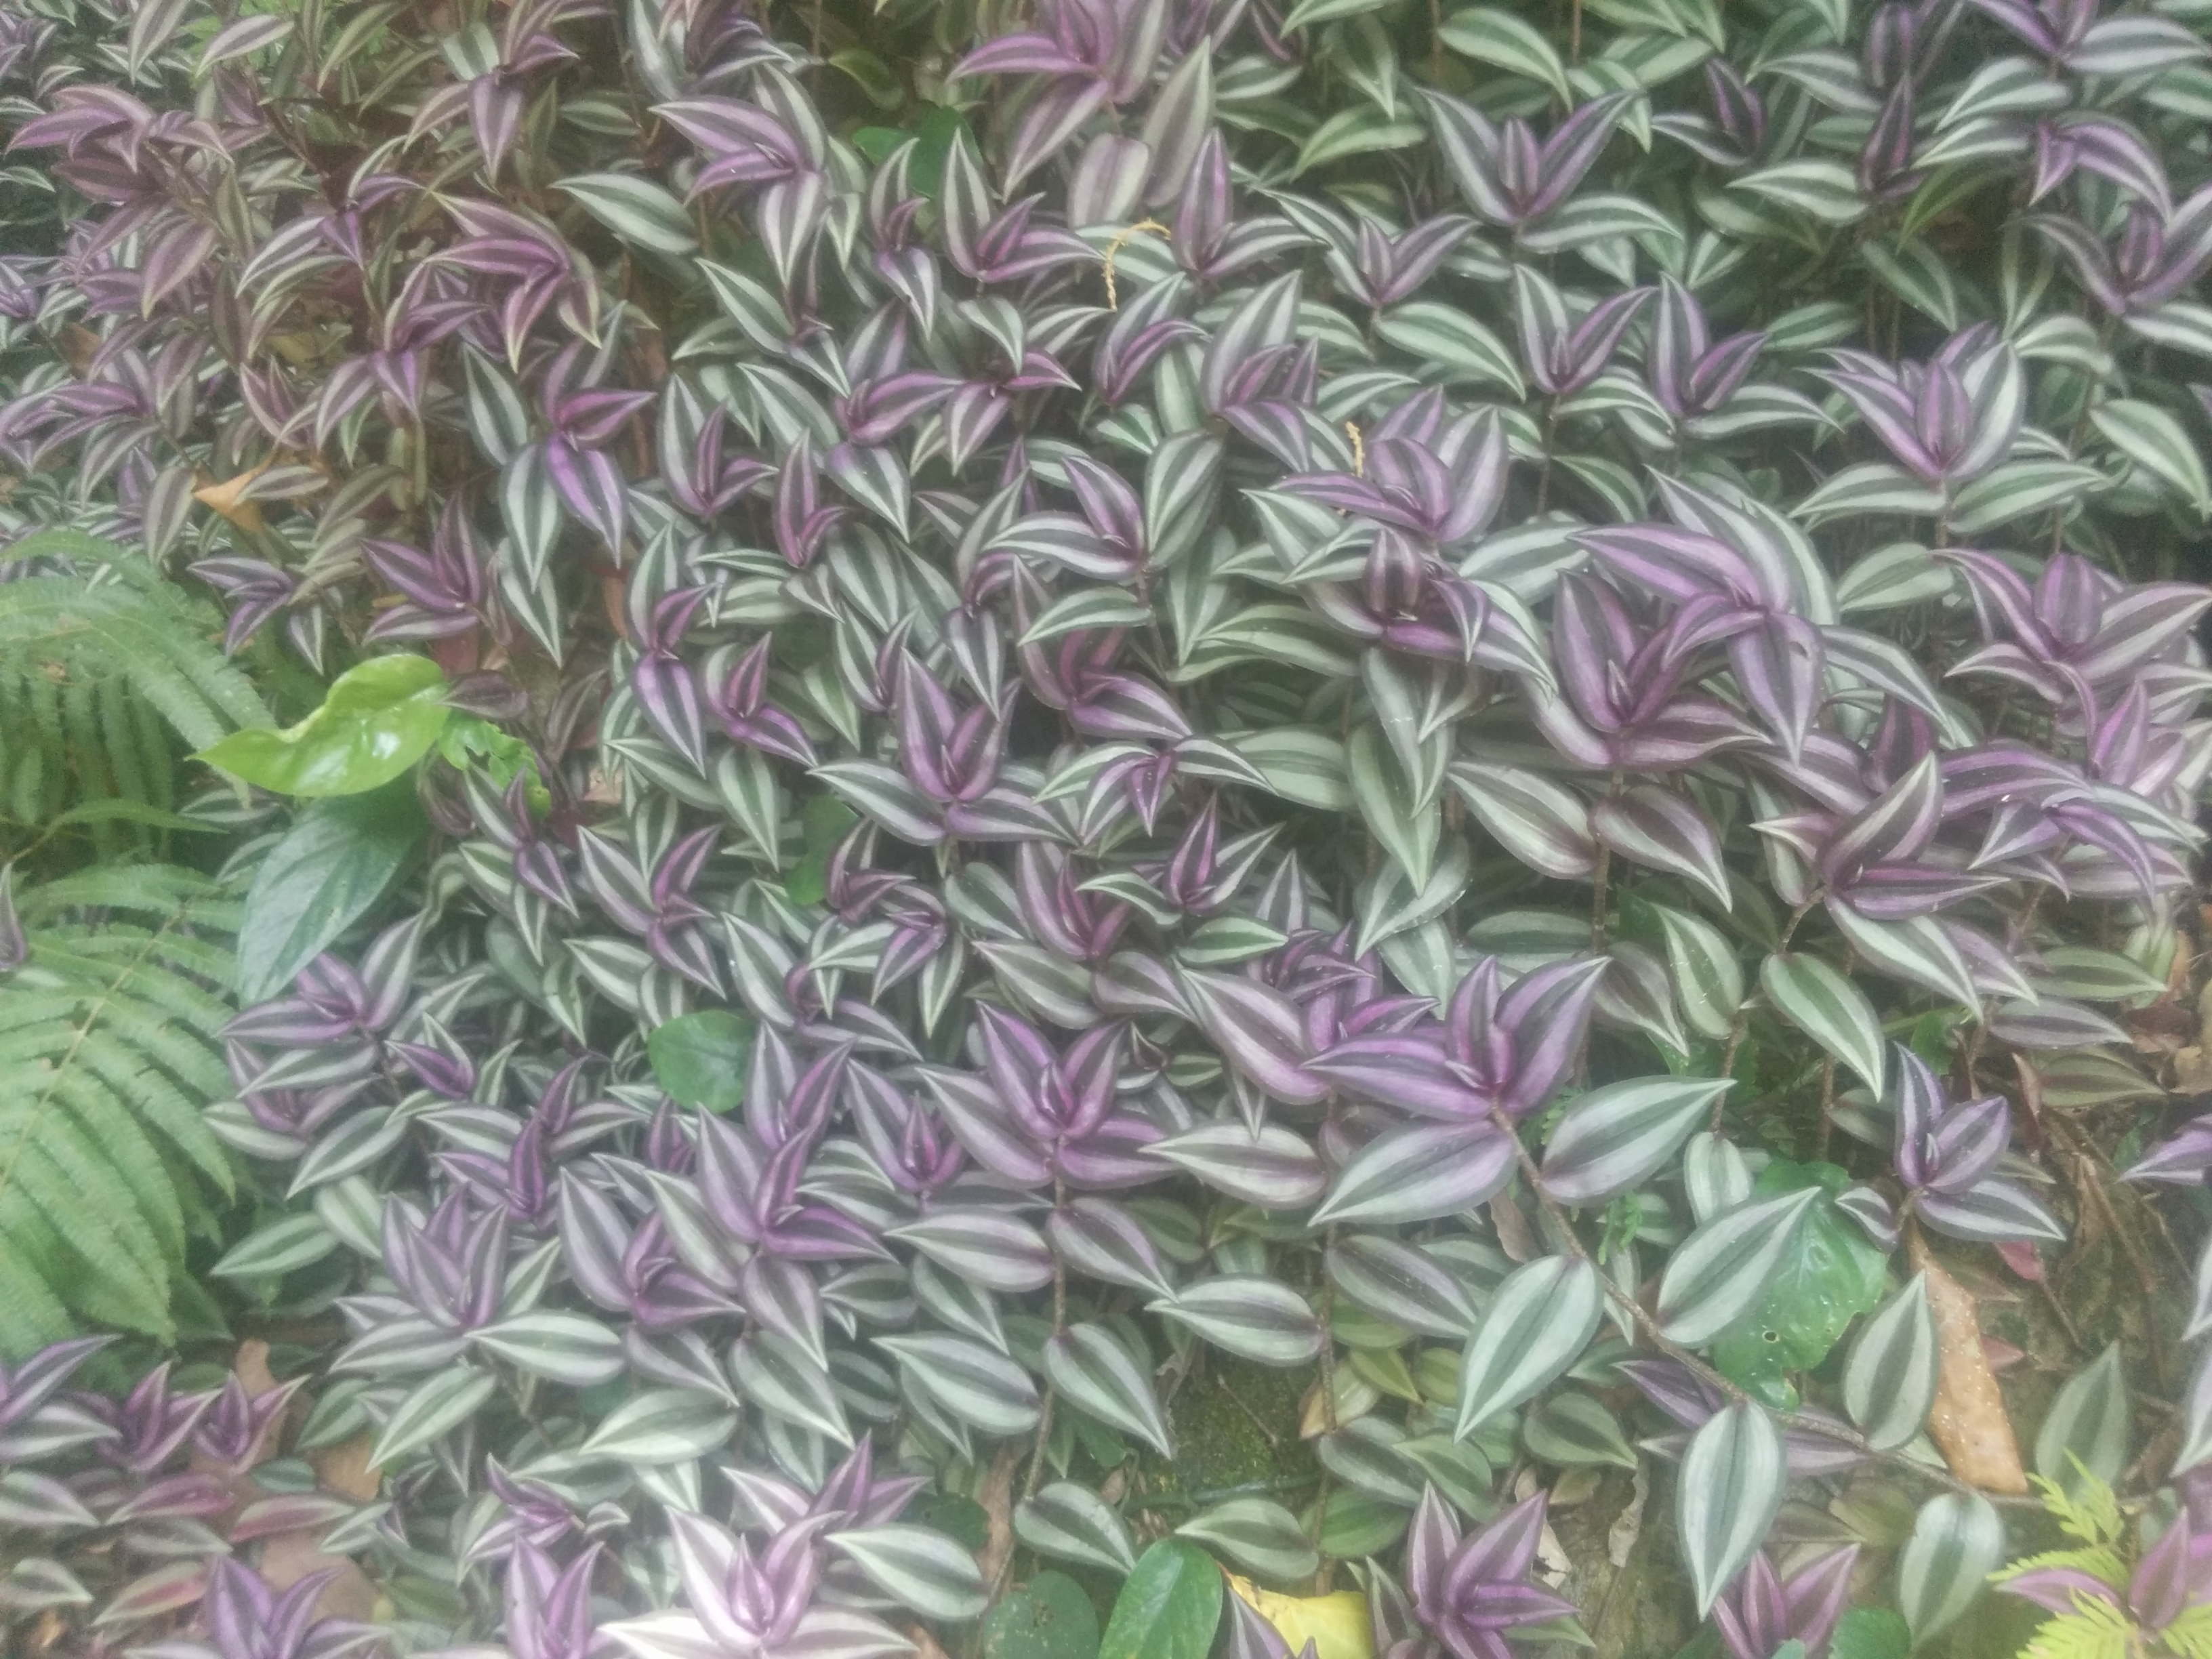 Some cute purple plant growing along the river